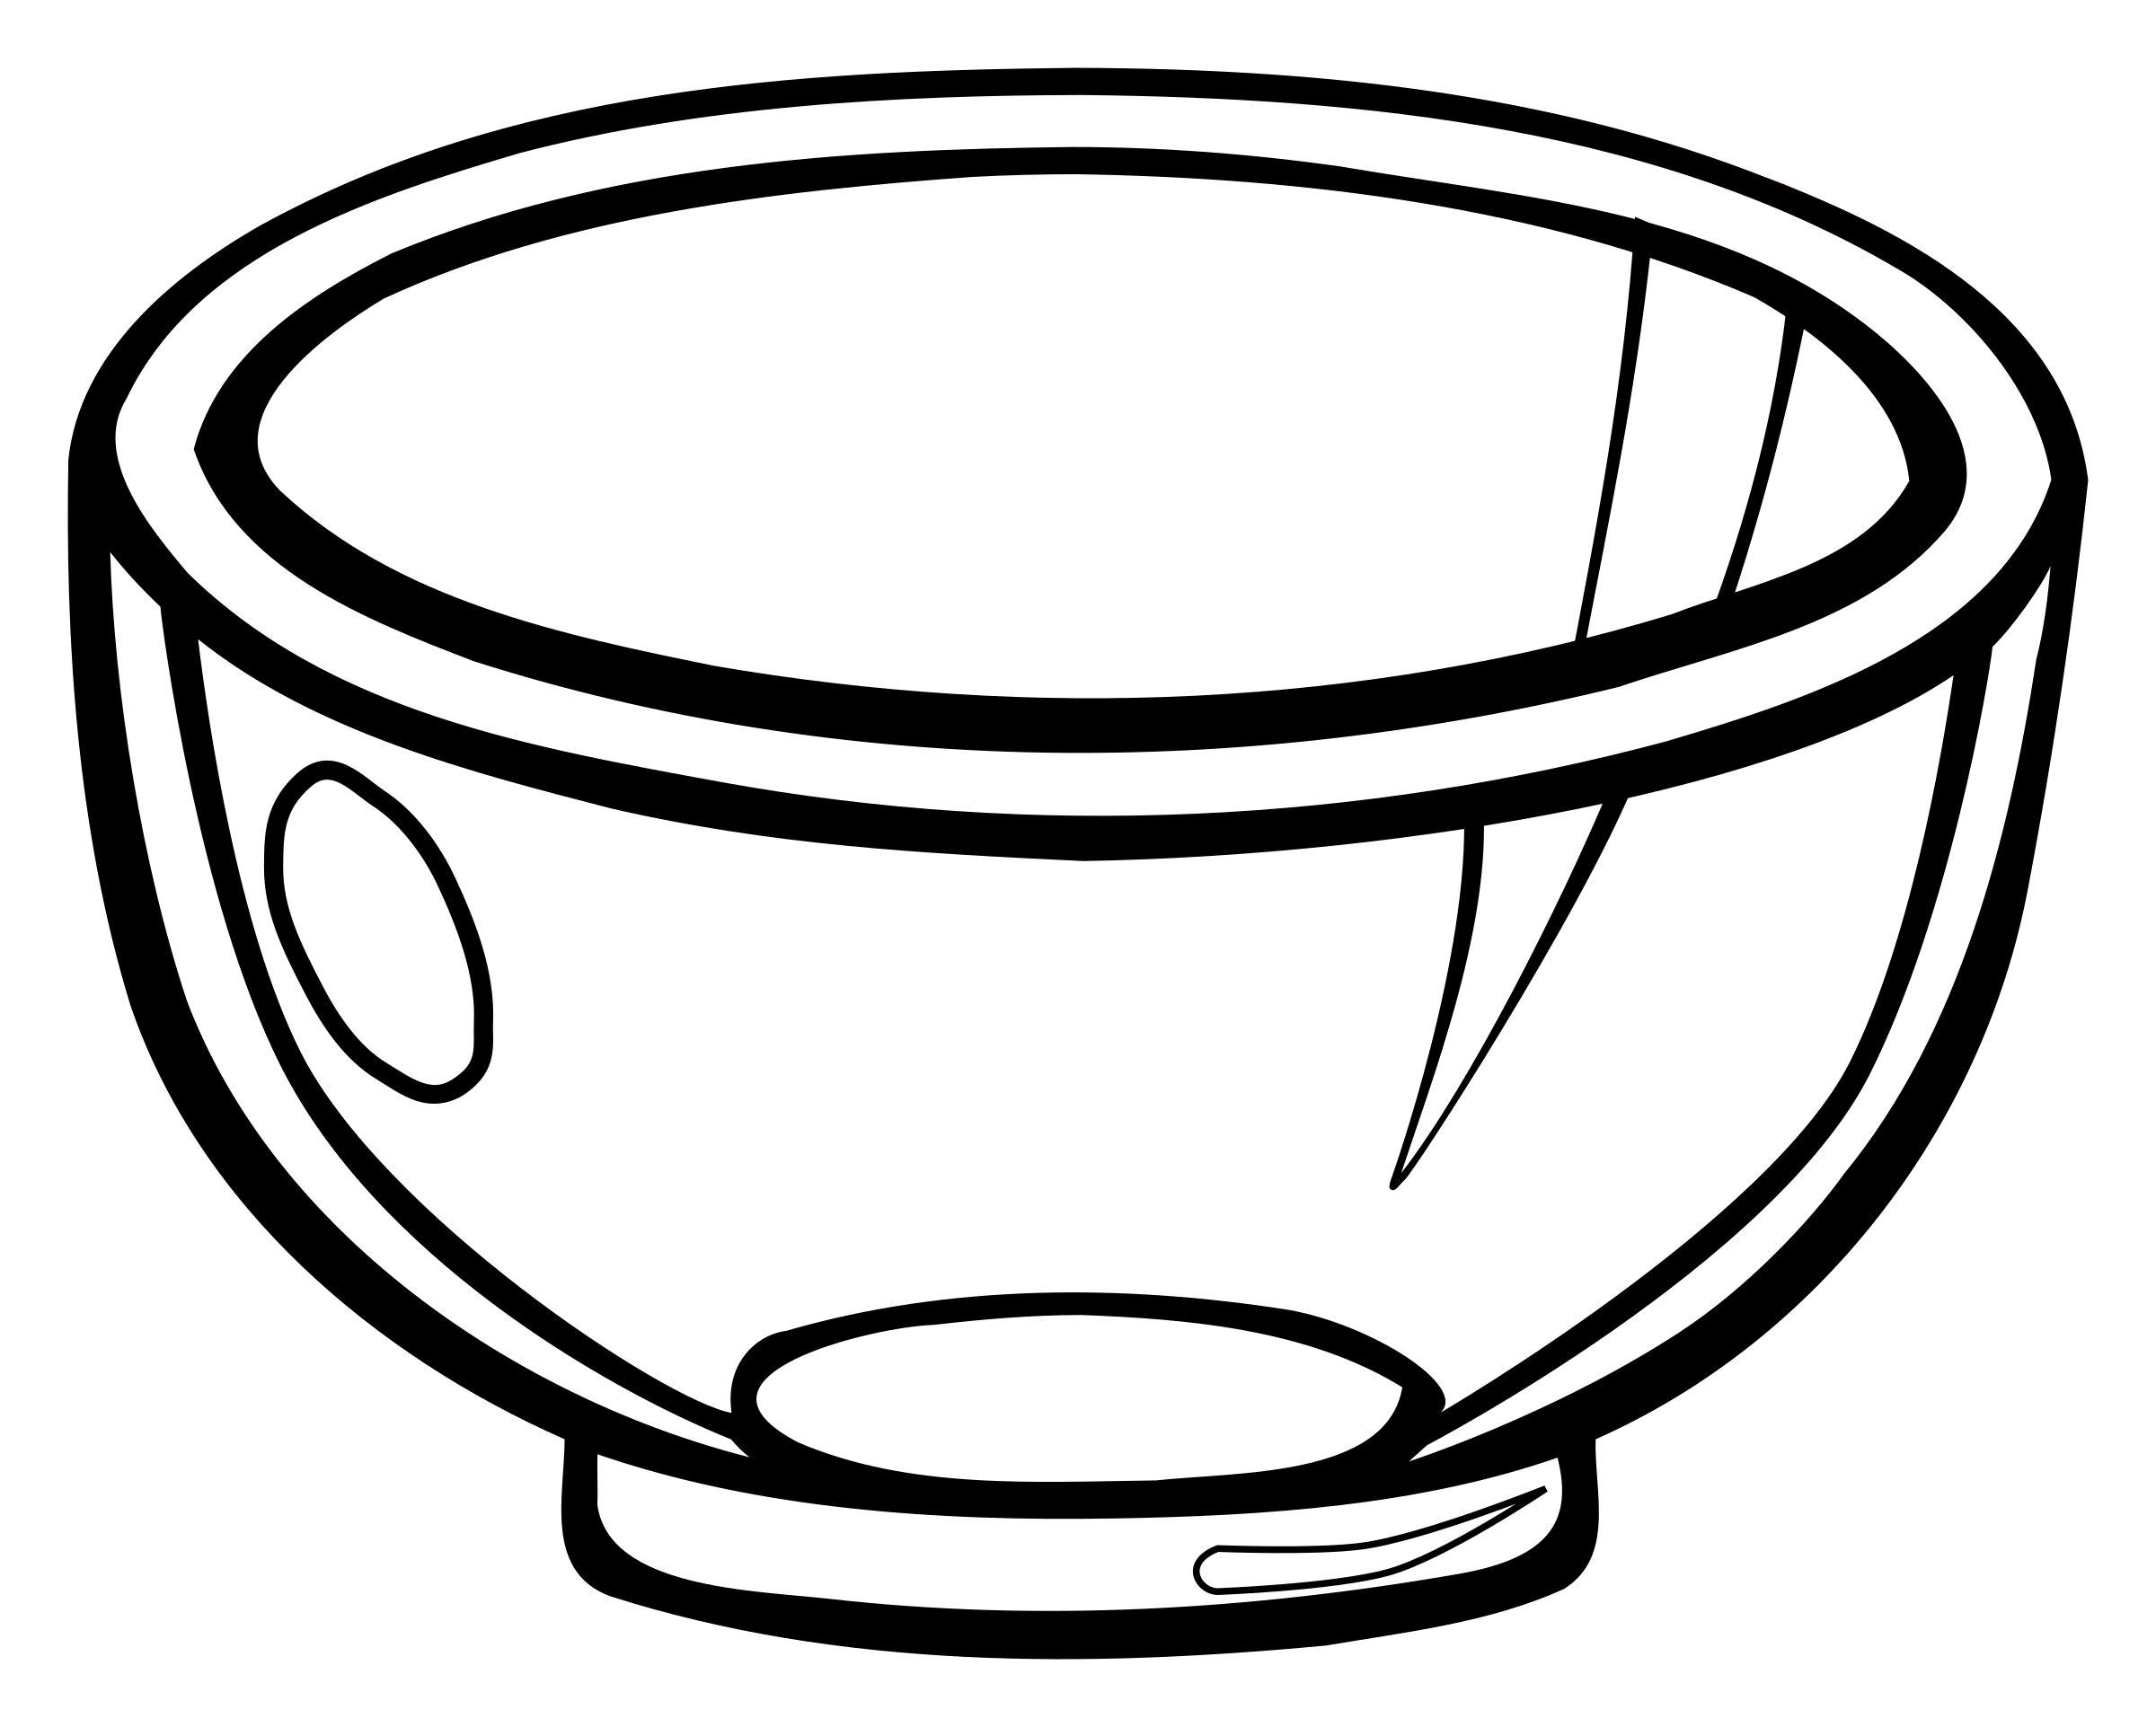 bowl - lineart by frankes